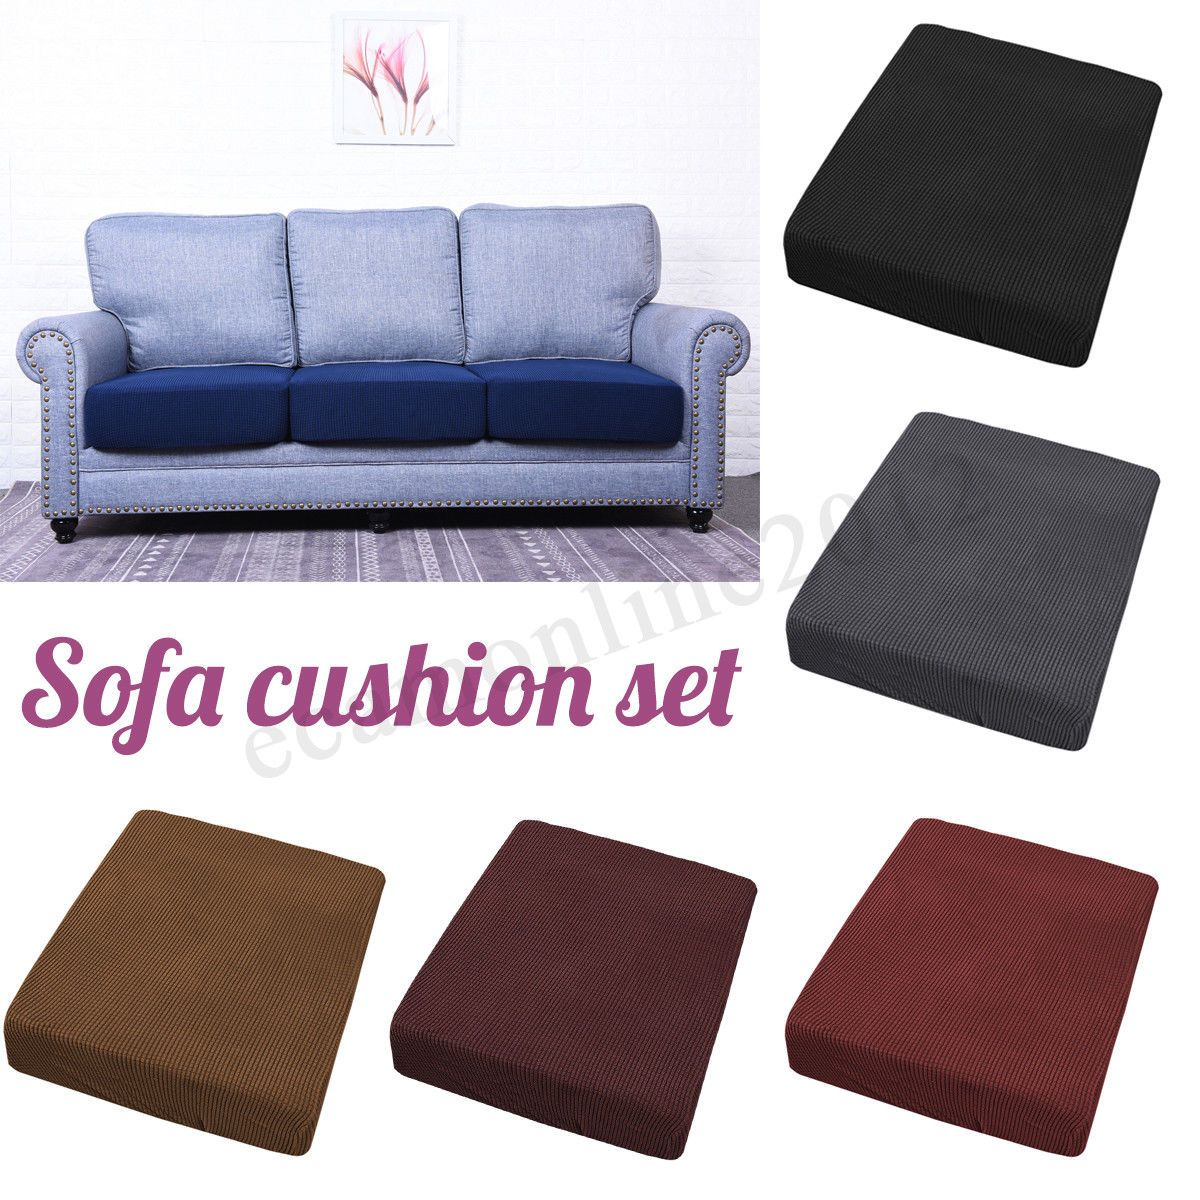 Replacement Sofa Stretchy Seat Cushion Cover Couch Slip Covers Protector Fabric Sofa Slipcover Cushions On Sofa Replacement Sofa Cushions Seat Cushion Covers